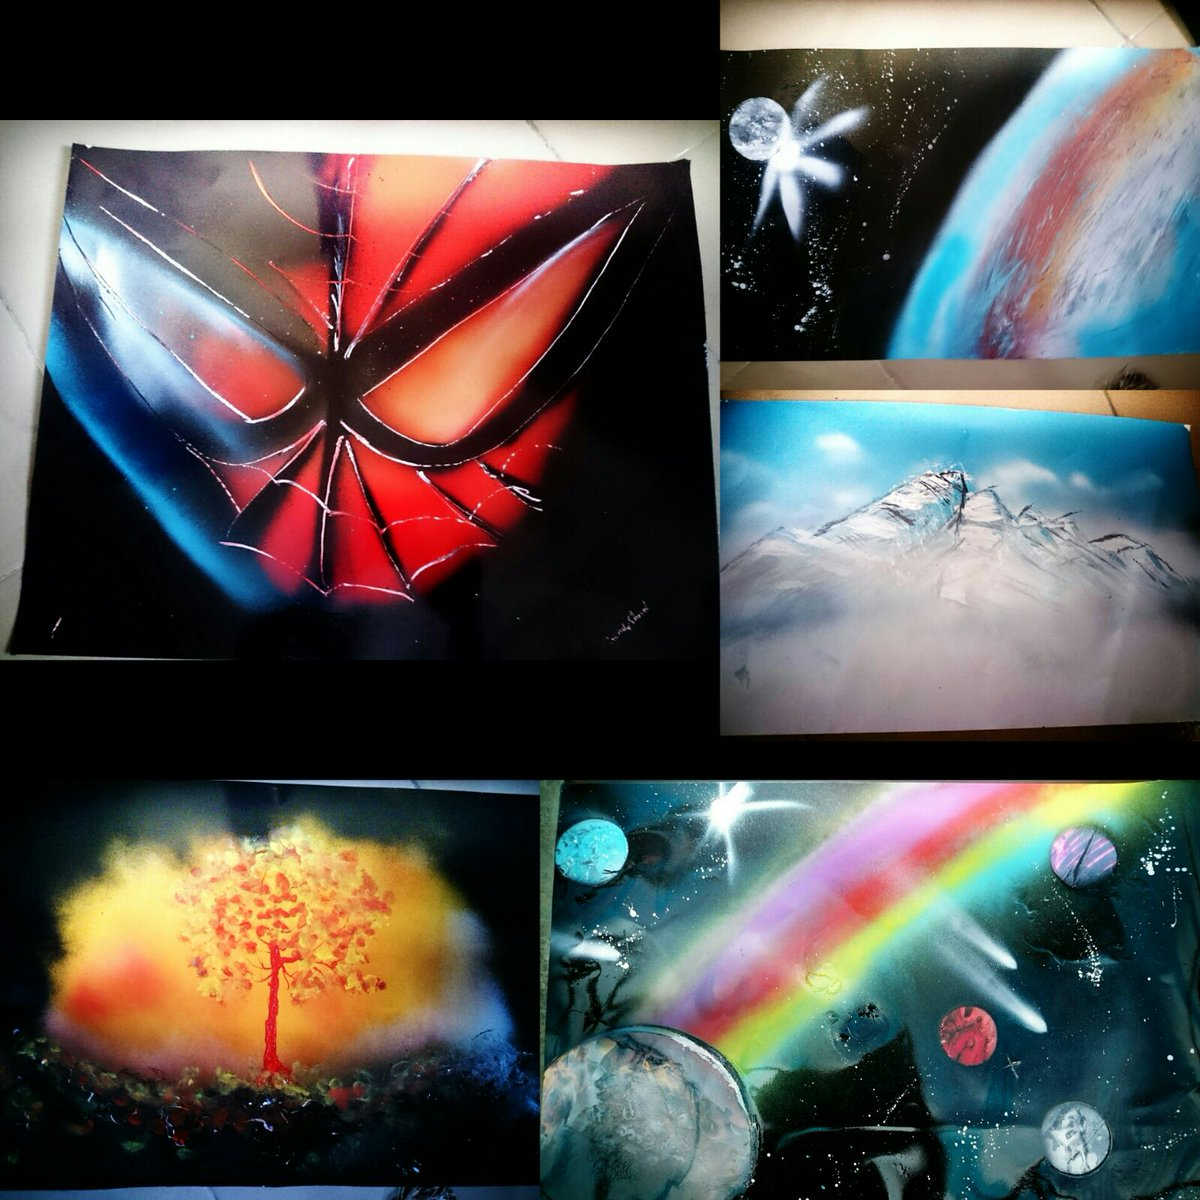 Painting is one of my hobbies. Should you need paintings (spray paint art) I've got some piece for sale. Kindly RT. https://t.co/YbbHgD1OF3